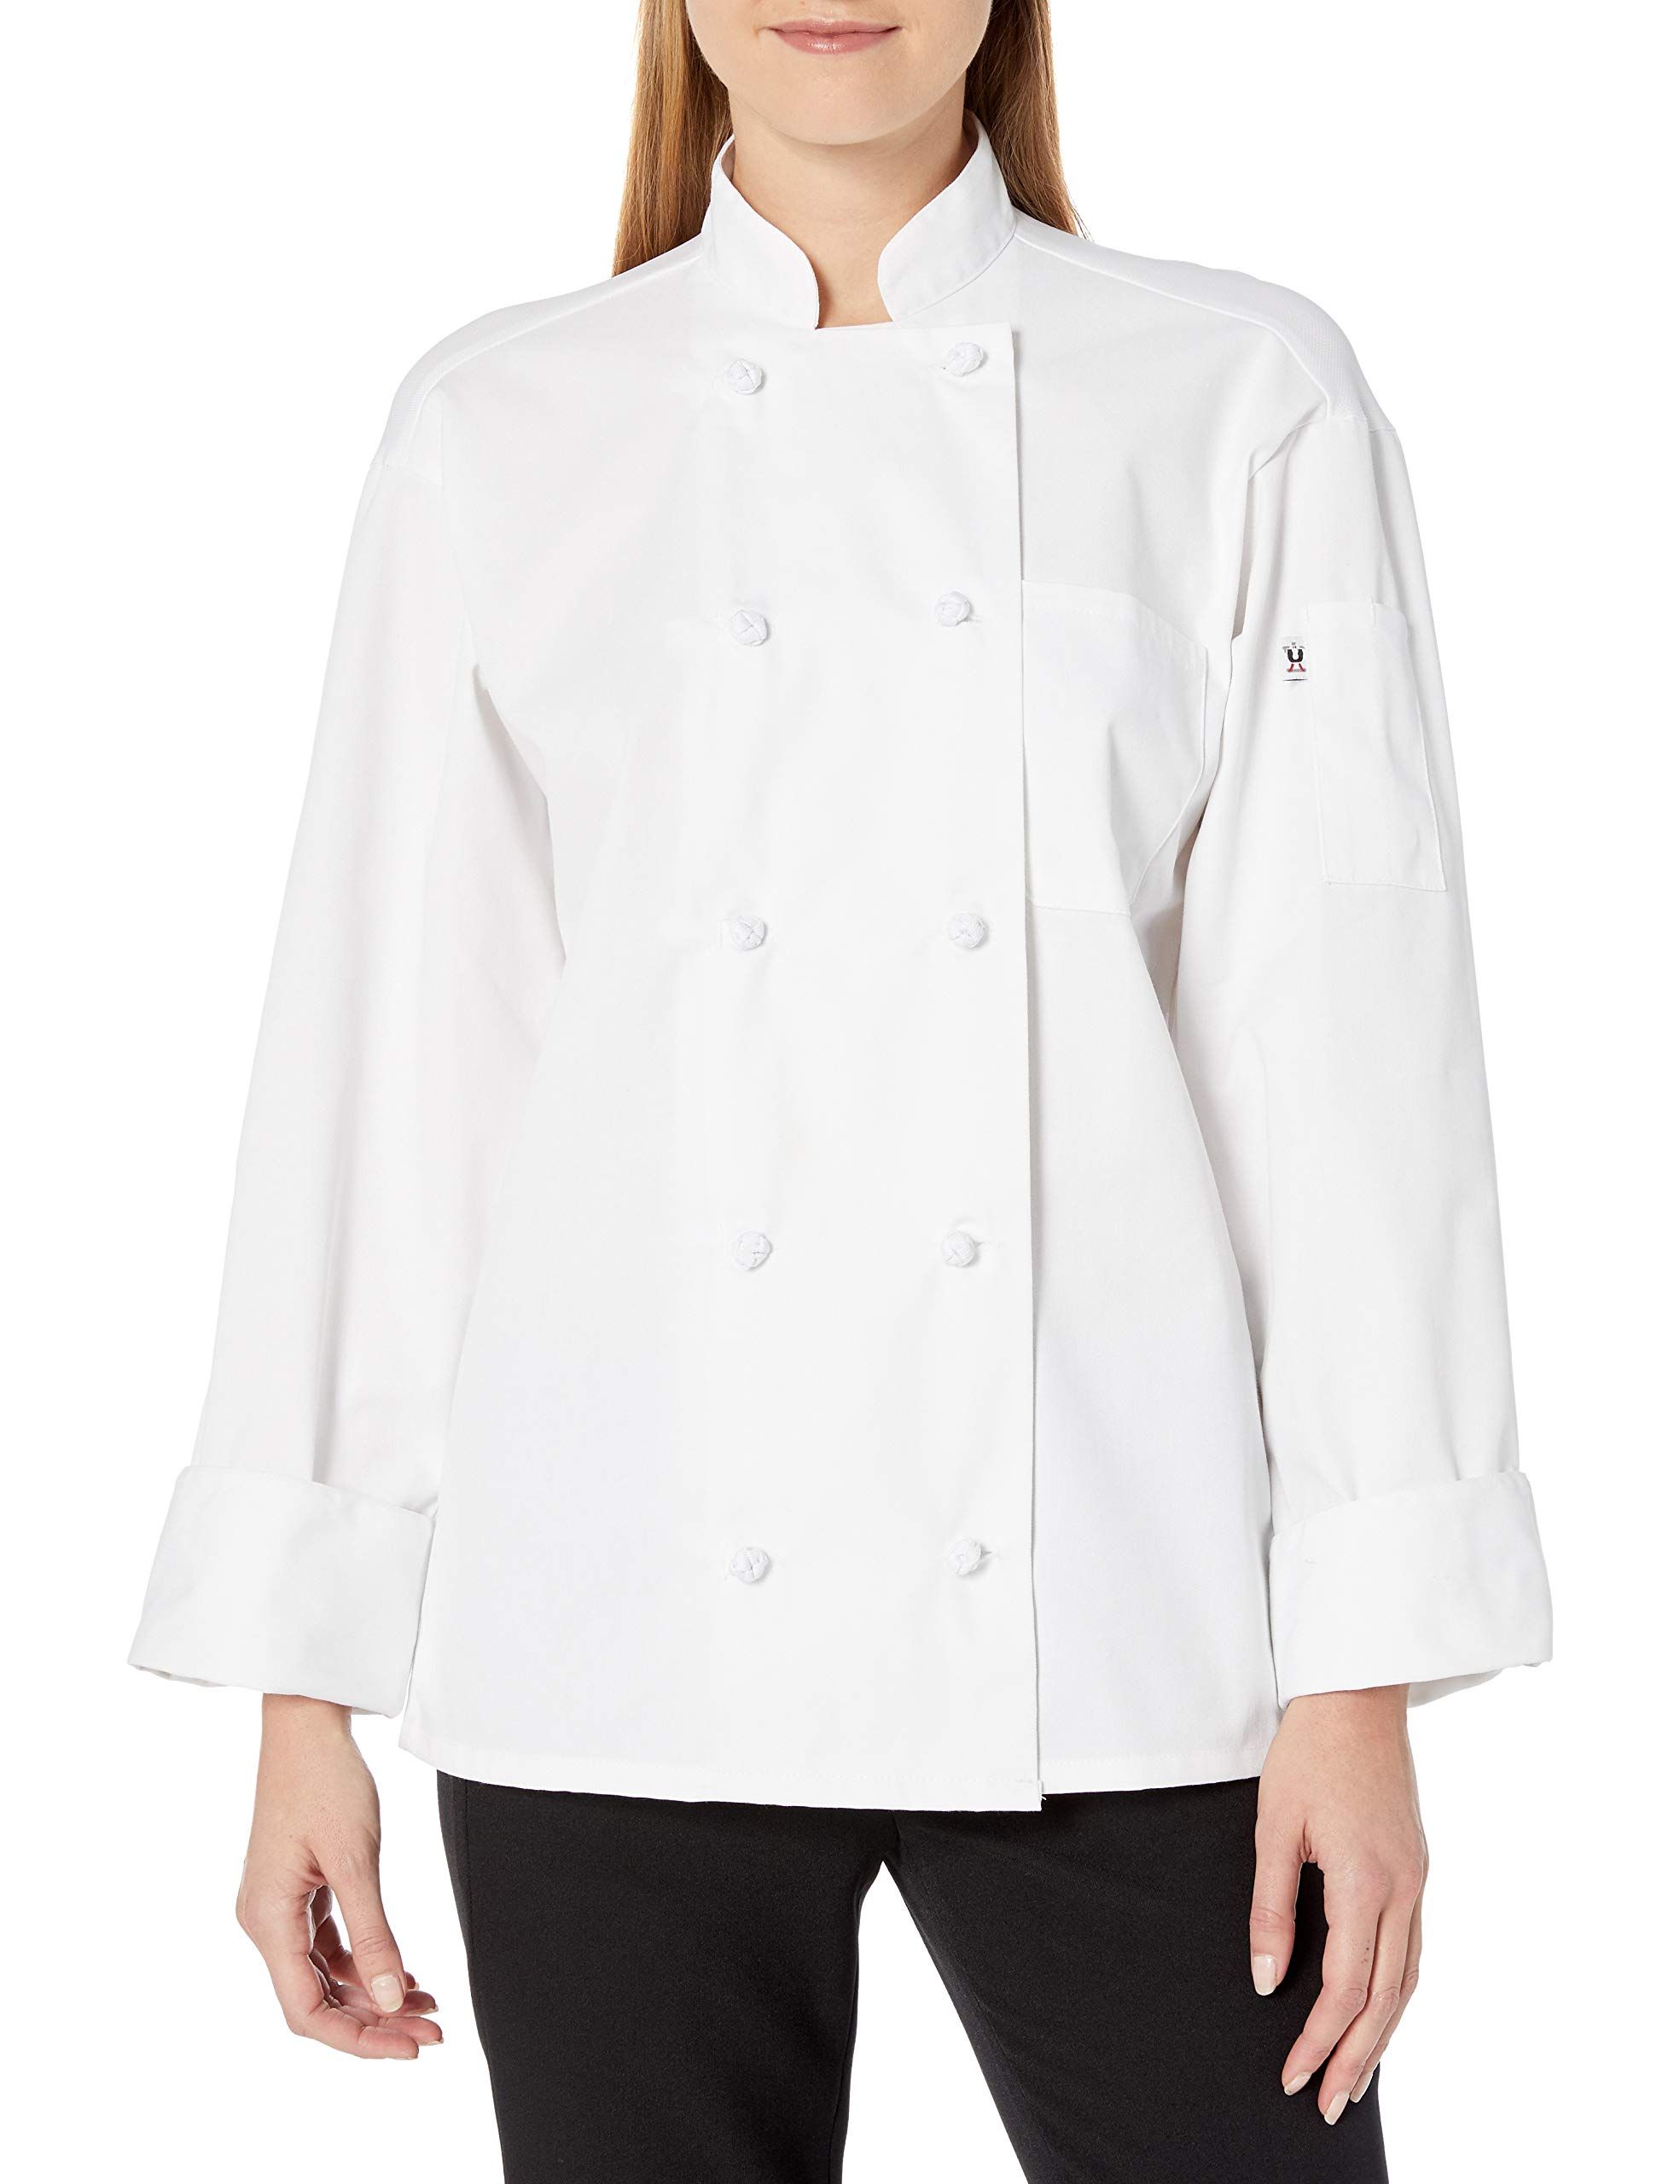 Uncommon Threads Women's Classic Knot with Mesh Chef Coat